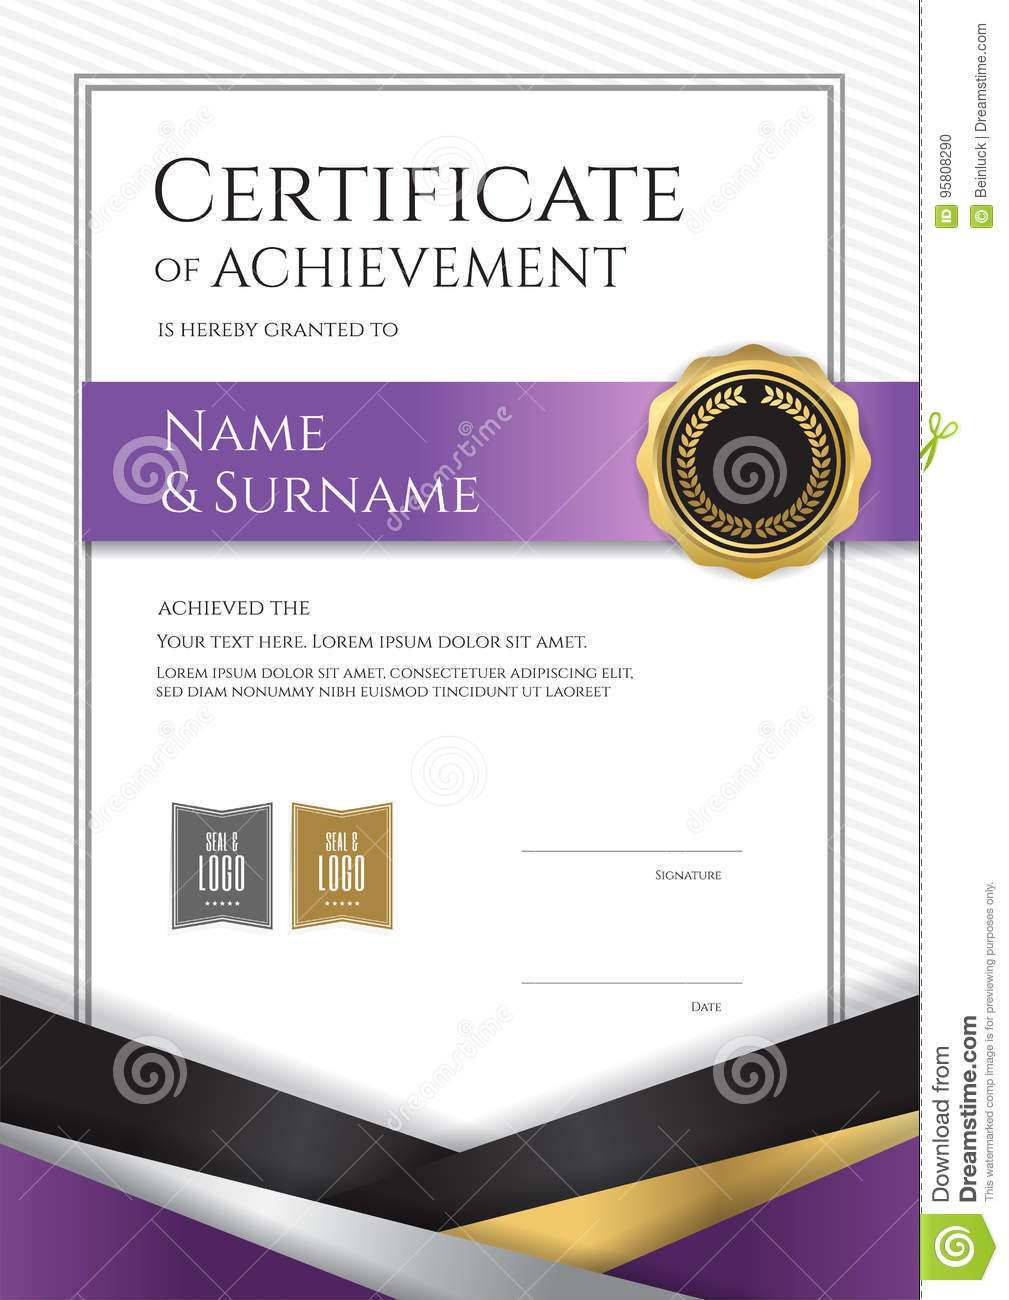 Portrait luxury certificate template with elegant border frame portrait luxury certificate template with elegant border frame royalty free vector xflitez Image collections